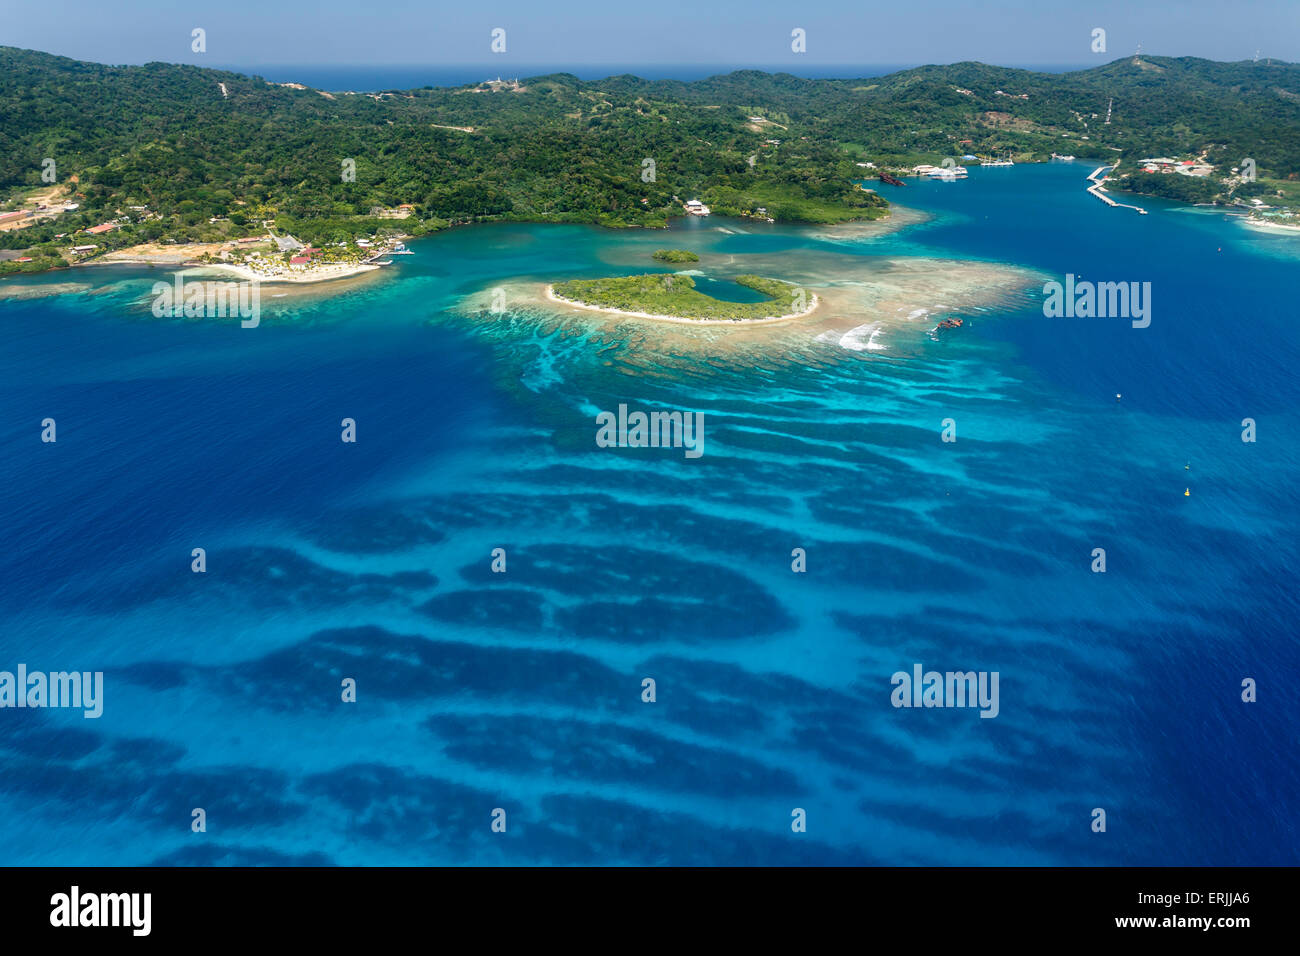 Aerial image of the coral reef off the shore of Roatan Island in Honduras, Caribbean Sea - Stock Image